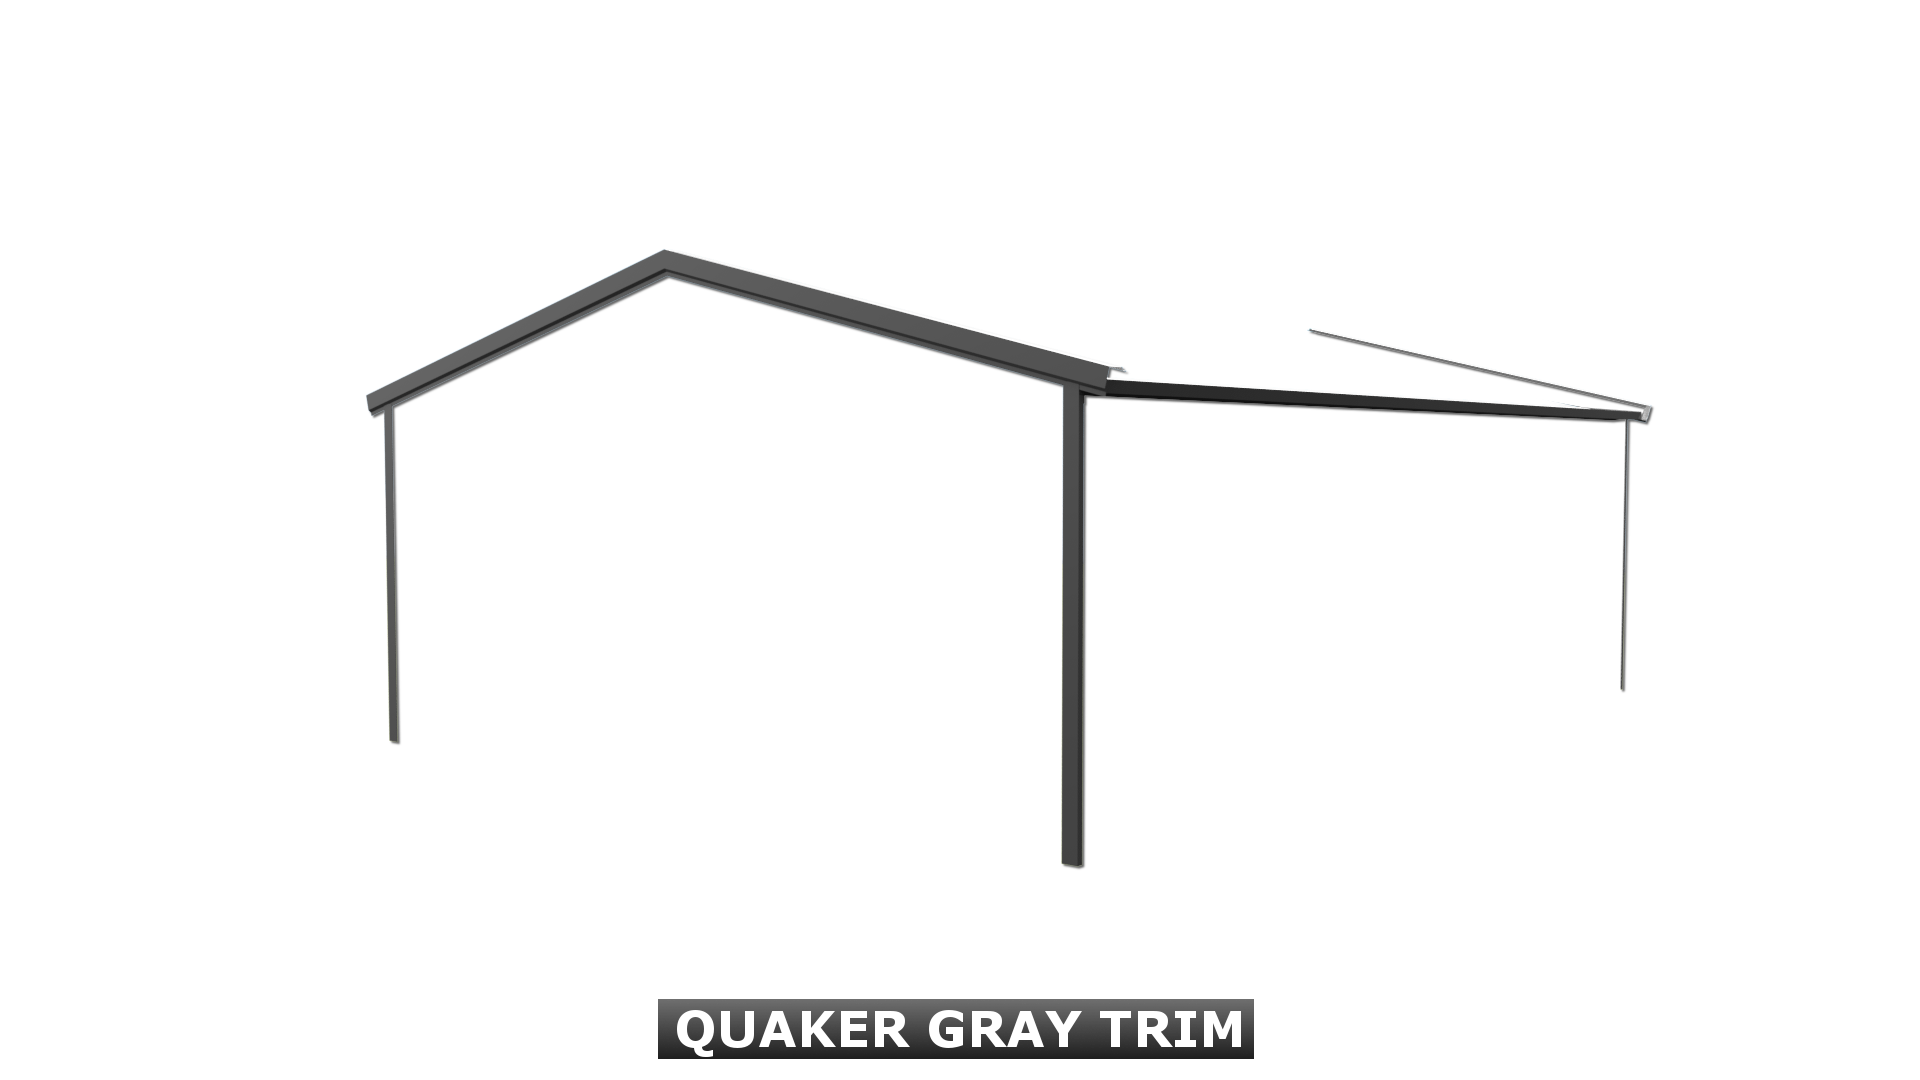 QUAKER GRAY TRIM